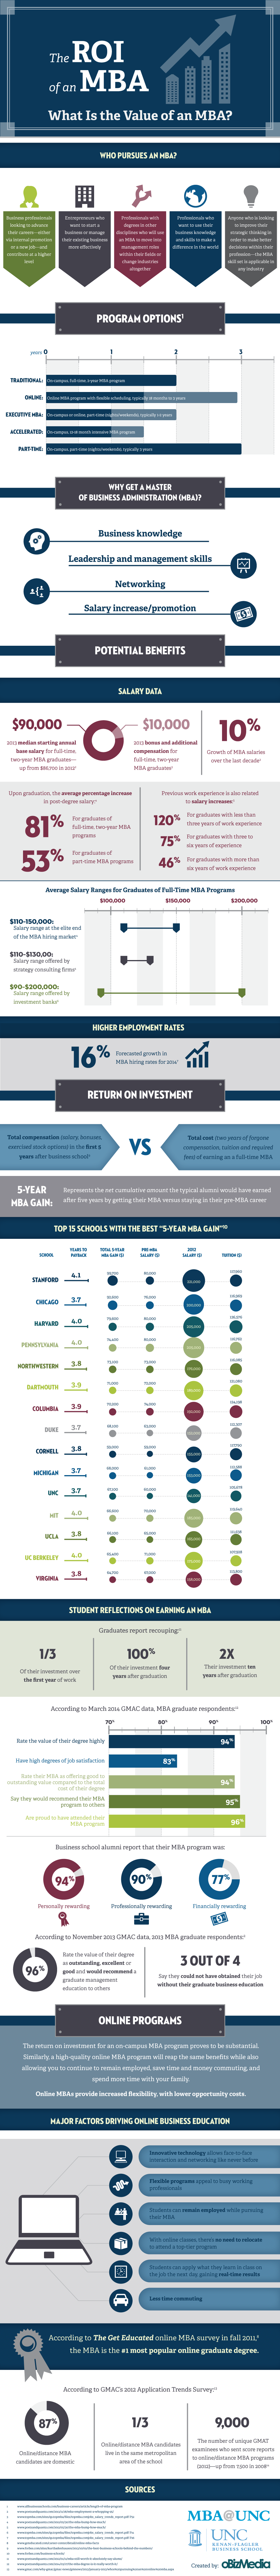 ROI of an MBA